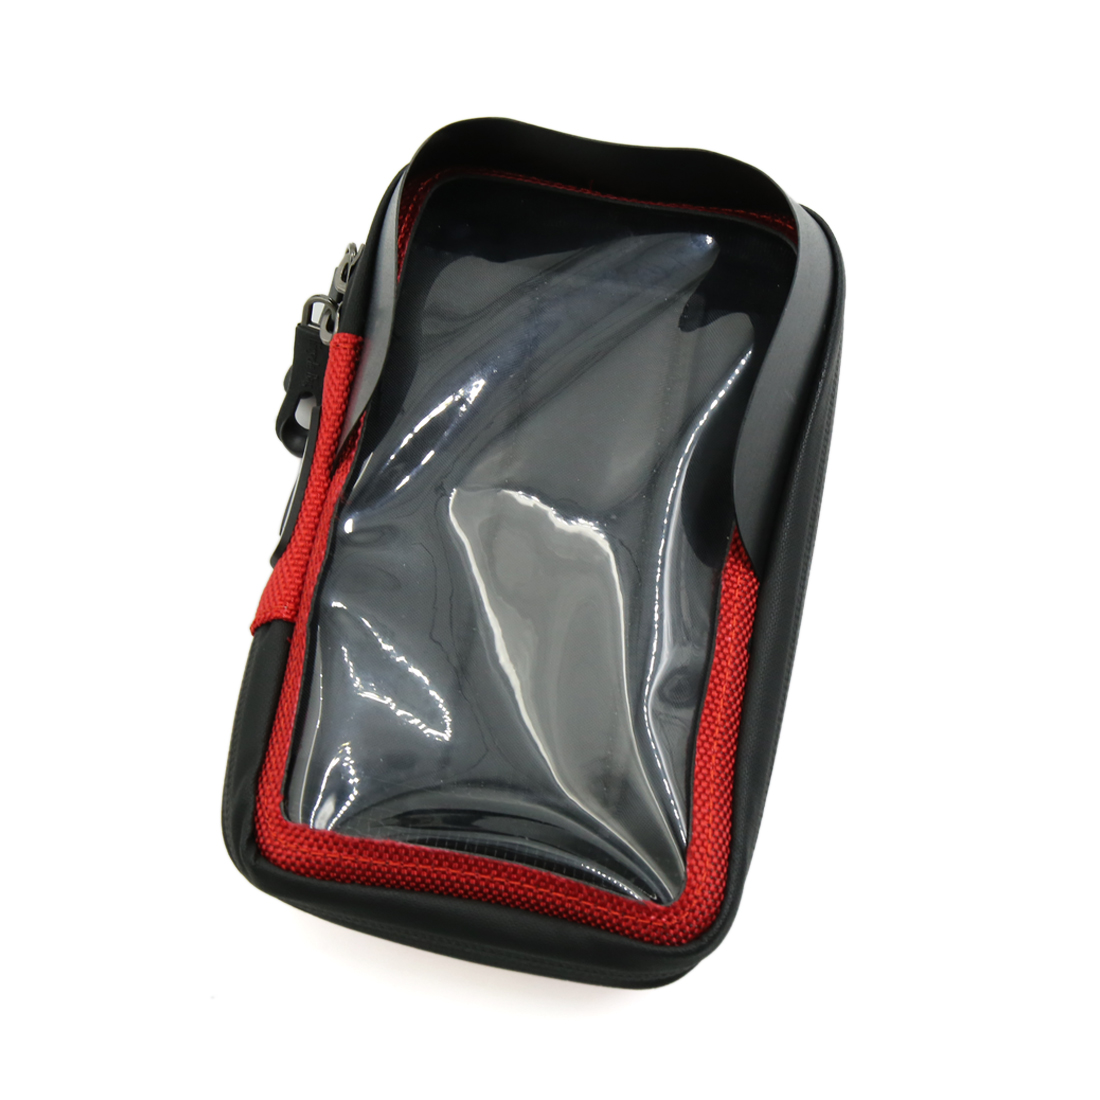 Red Outdoor Shading Waterproof Touchscreen Front Frame Phone Bag for Bicycle